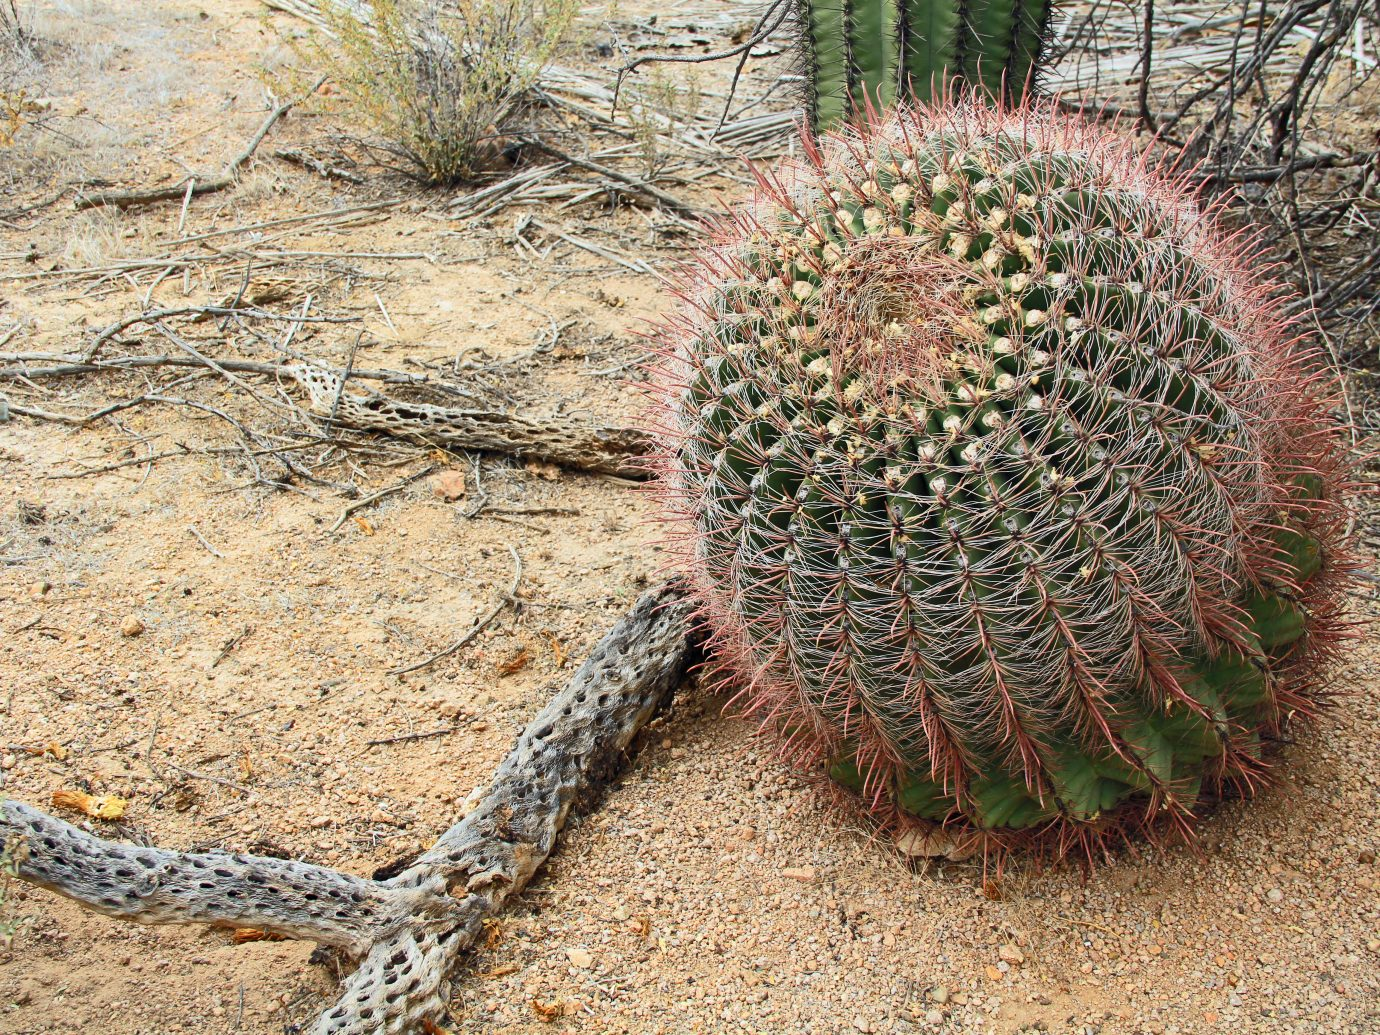 Fishhook barrel cactus beside the wooden remains of a dried dead cholla chainlink or cane cactus with background copy space in Saguaro National Park near Tucson, Arizona, USA.